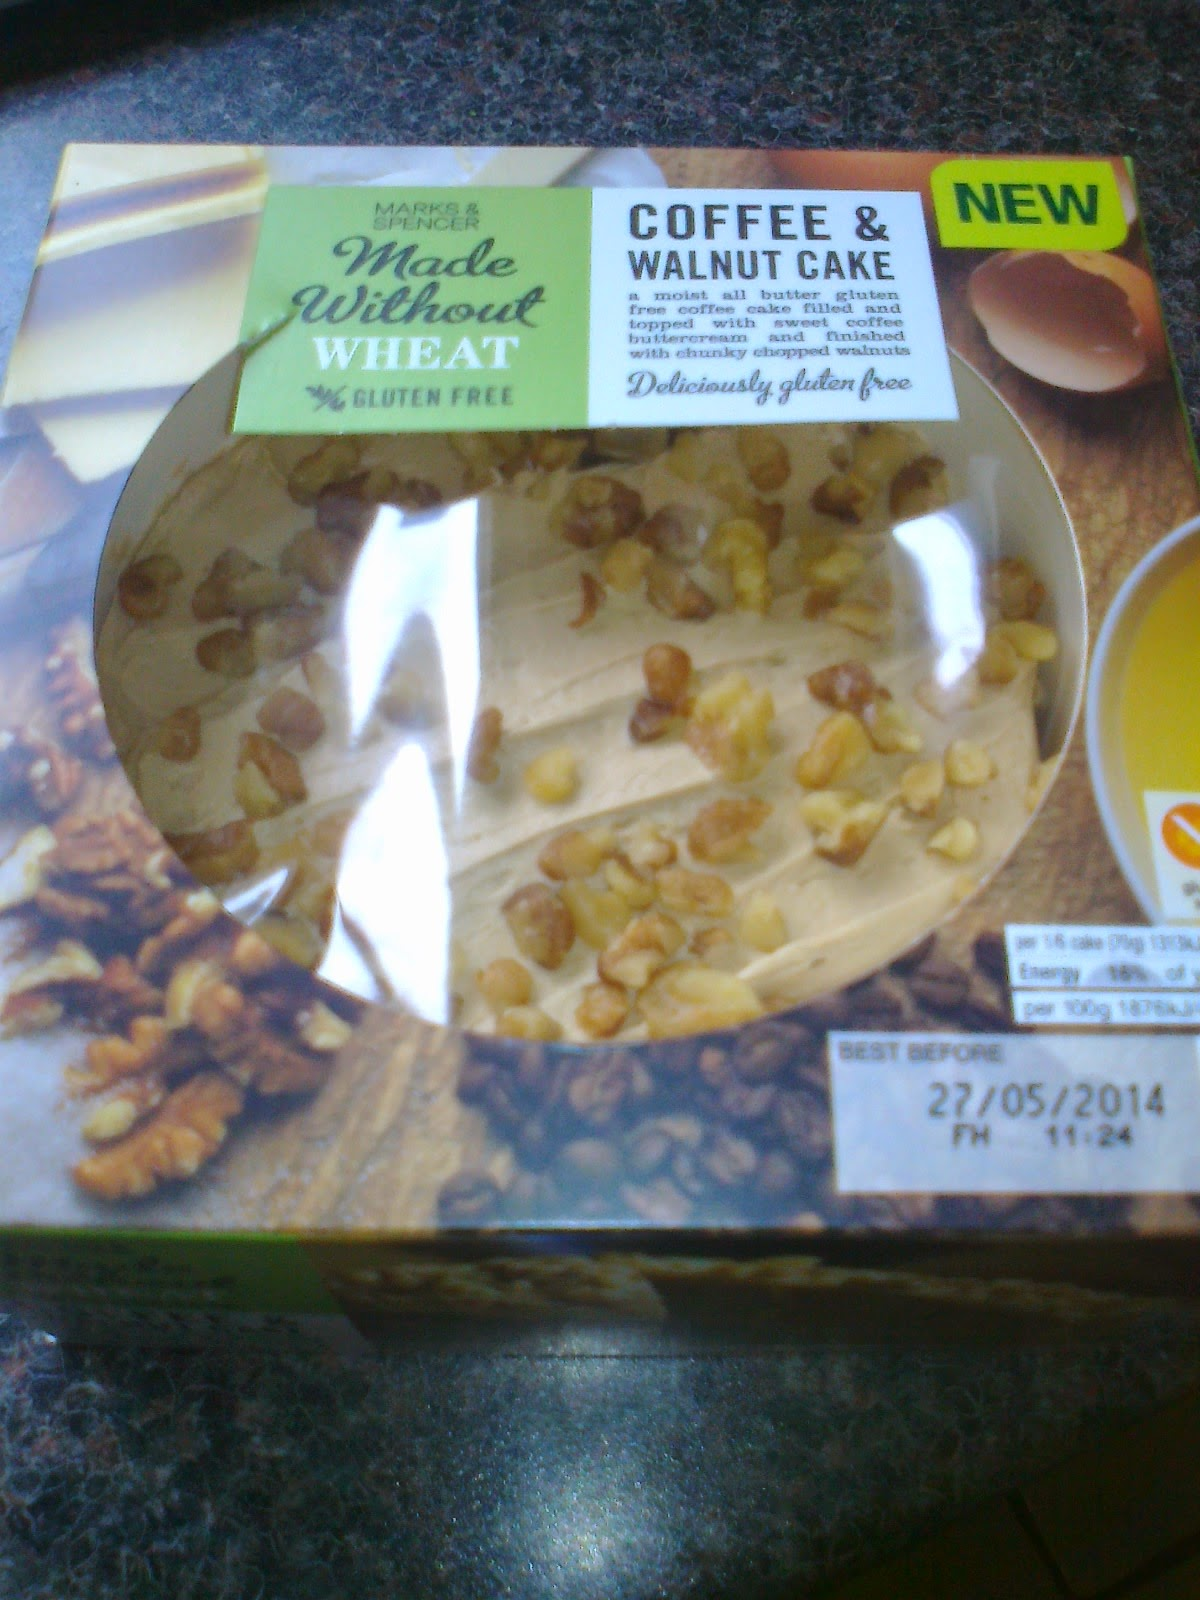 Marks and spencer coffee and walnut cake recipe